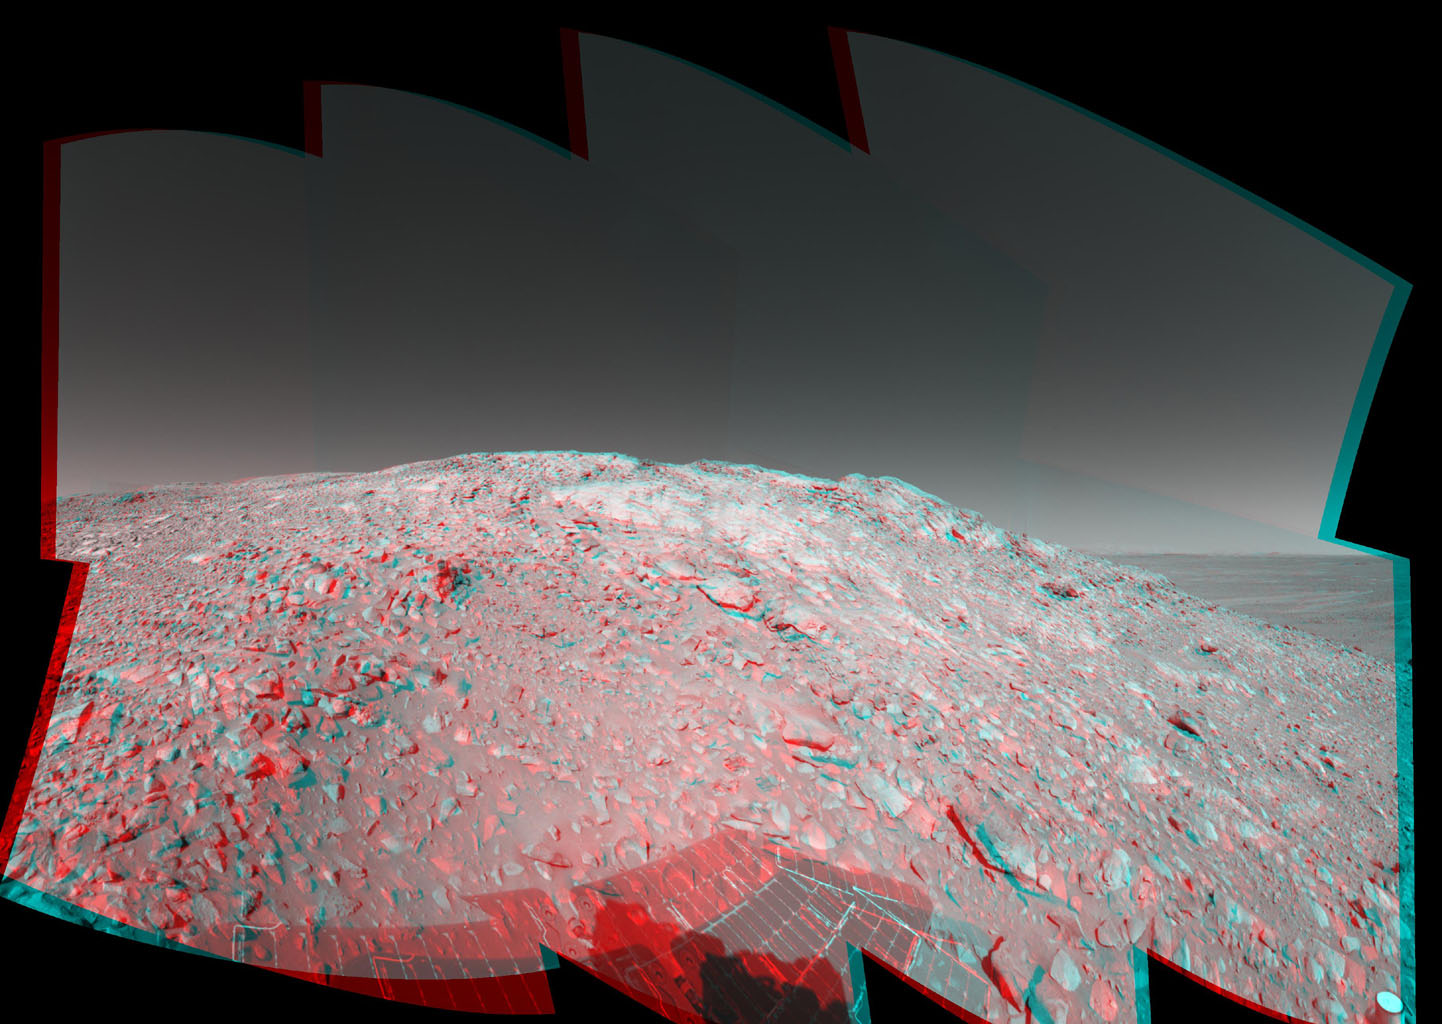 In this stereo image, a rock outcrop with a view of the surrounding landscape beckons NASA's Mars Exploration Rover Spirit on sol 203. 3D glasses are necessary to view this image.